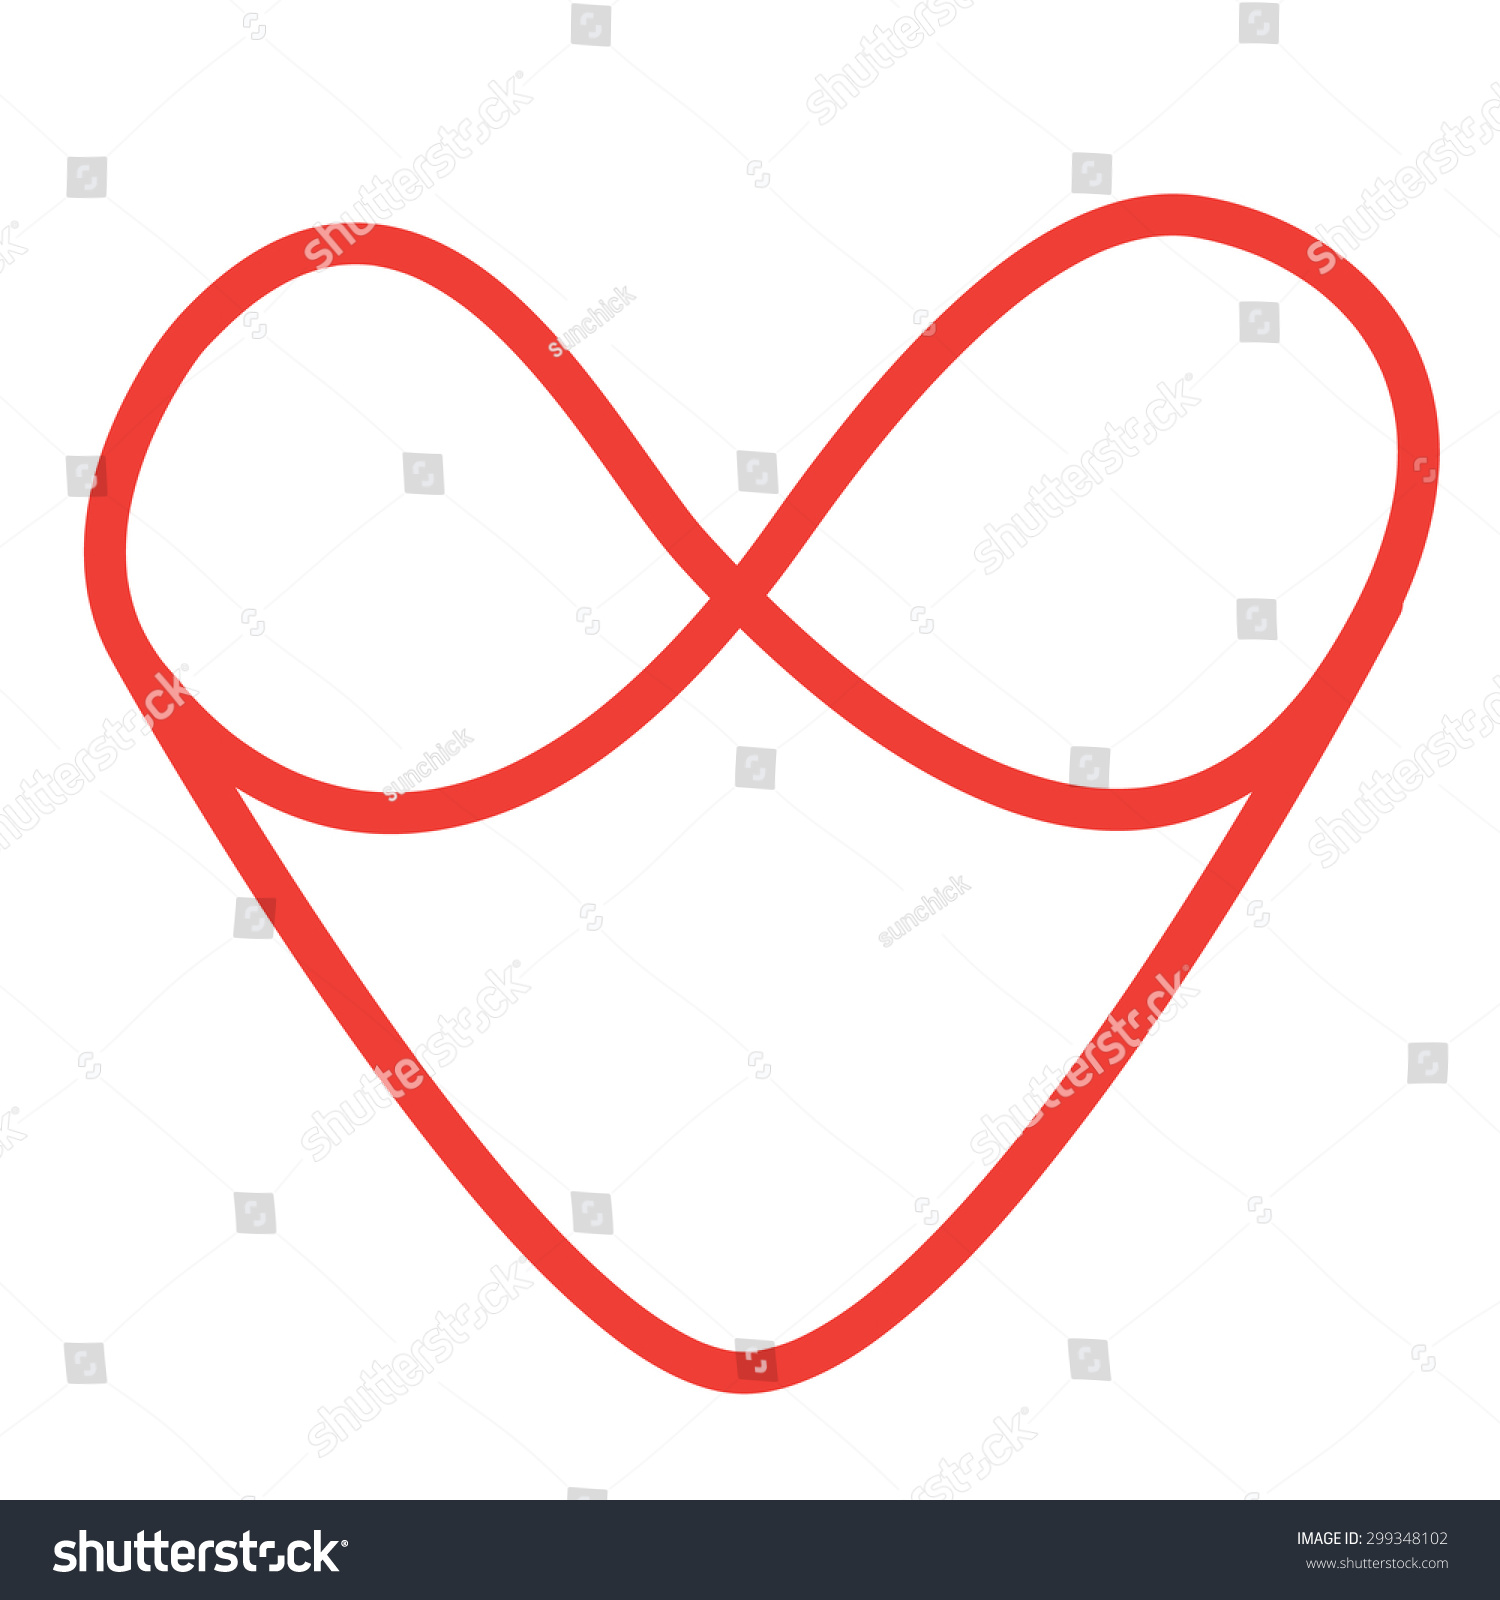 Handwritten red infinity symbol heart stock vector 299348102 handwritten red infinity symbol and heart buycottarizona Gallery